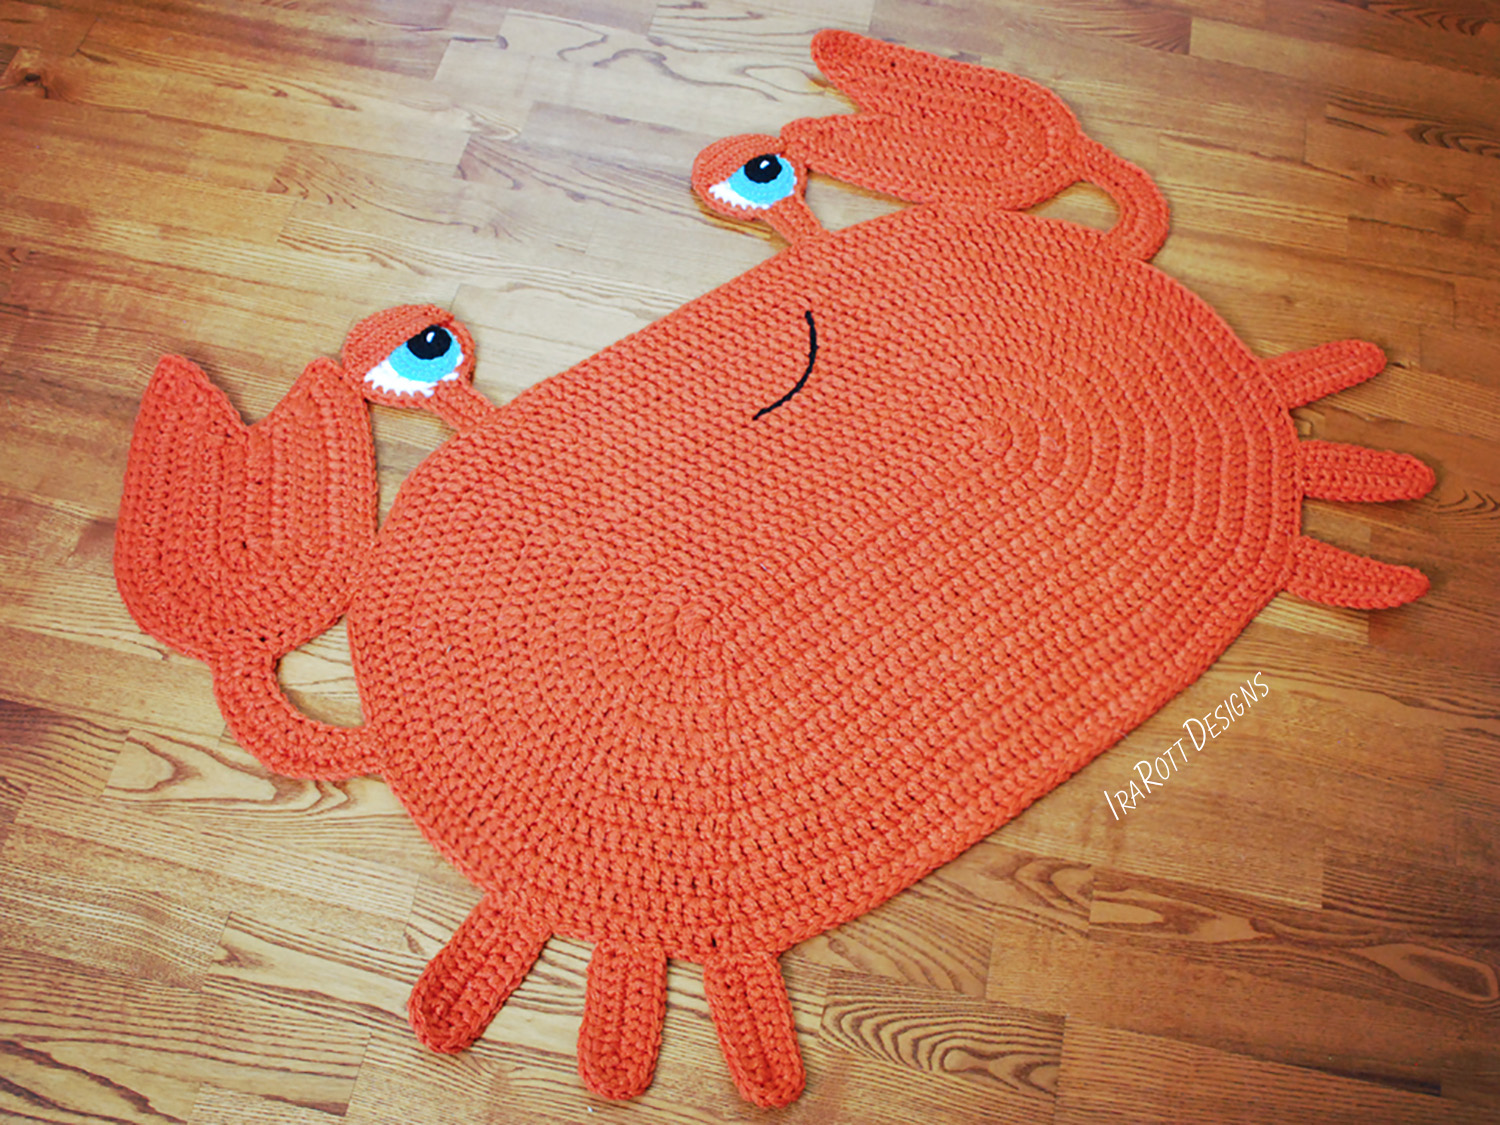 Crochet Pattern Pdf For Making A Cute Crab Sea Creature Animal Rug Or Nursery Mat Carpet